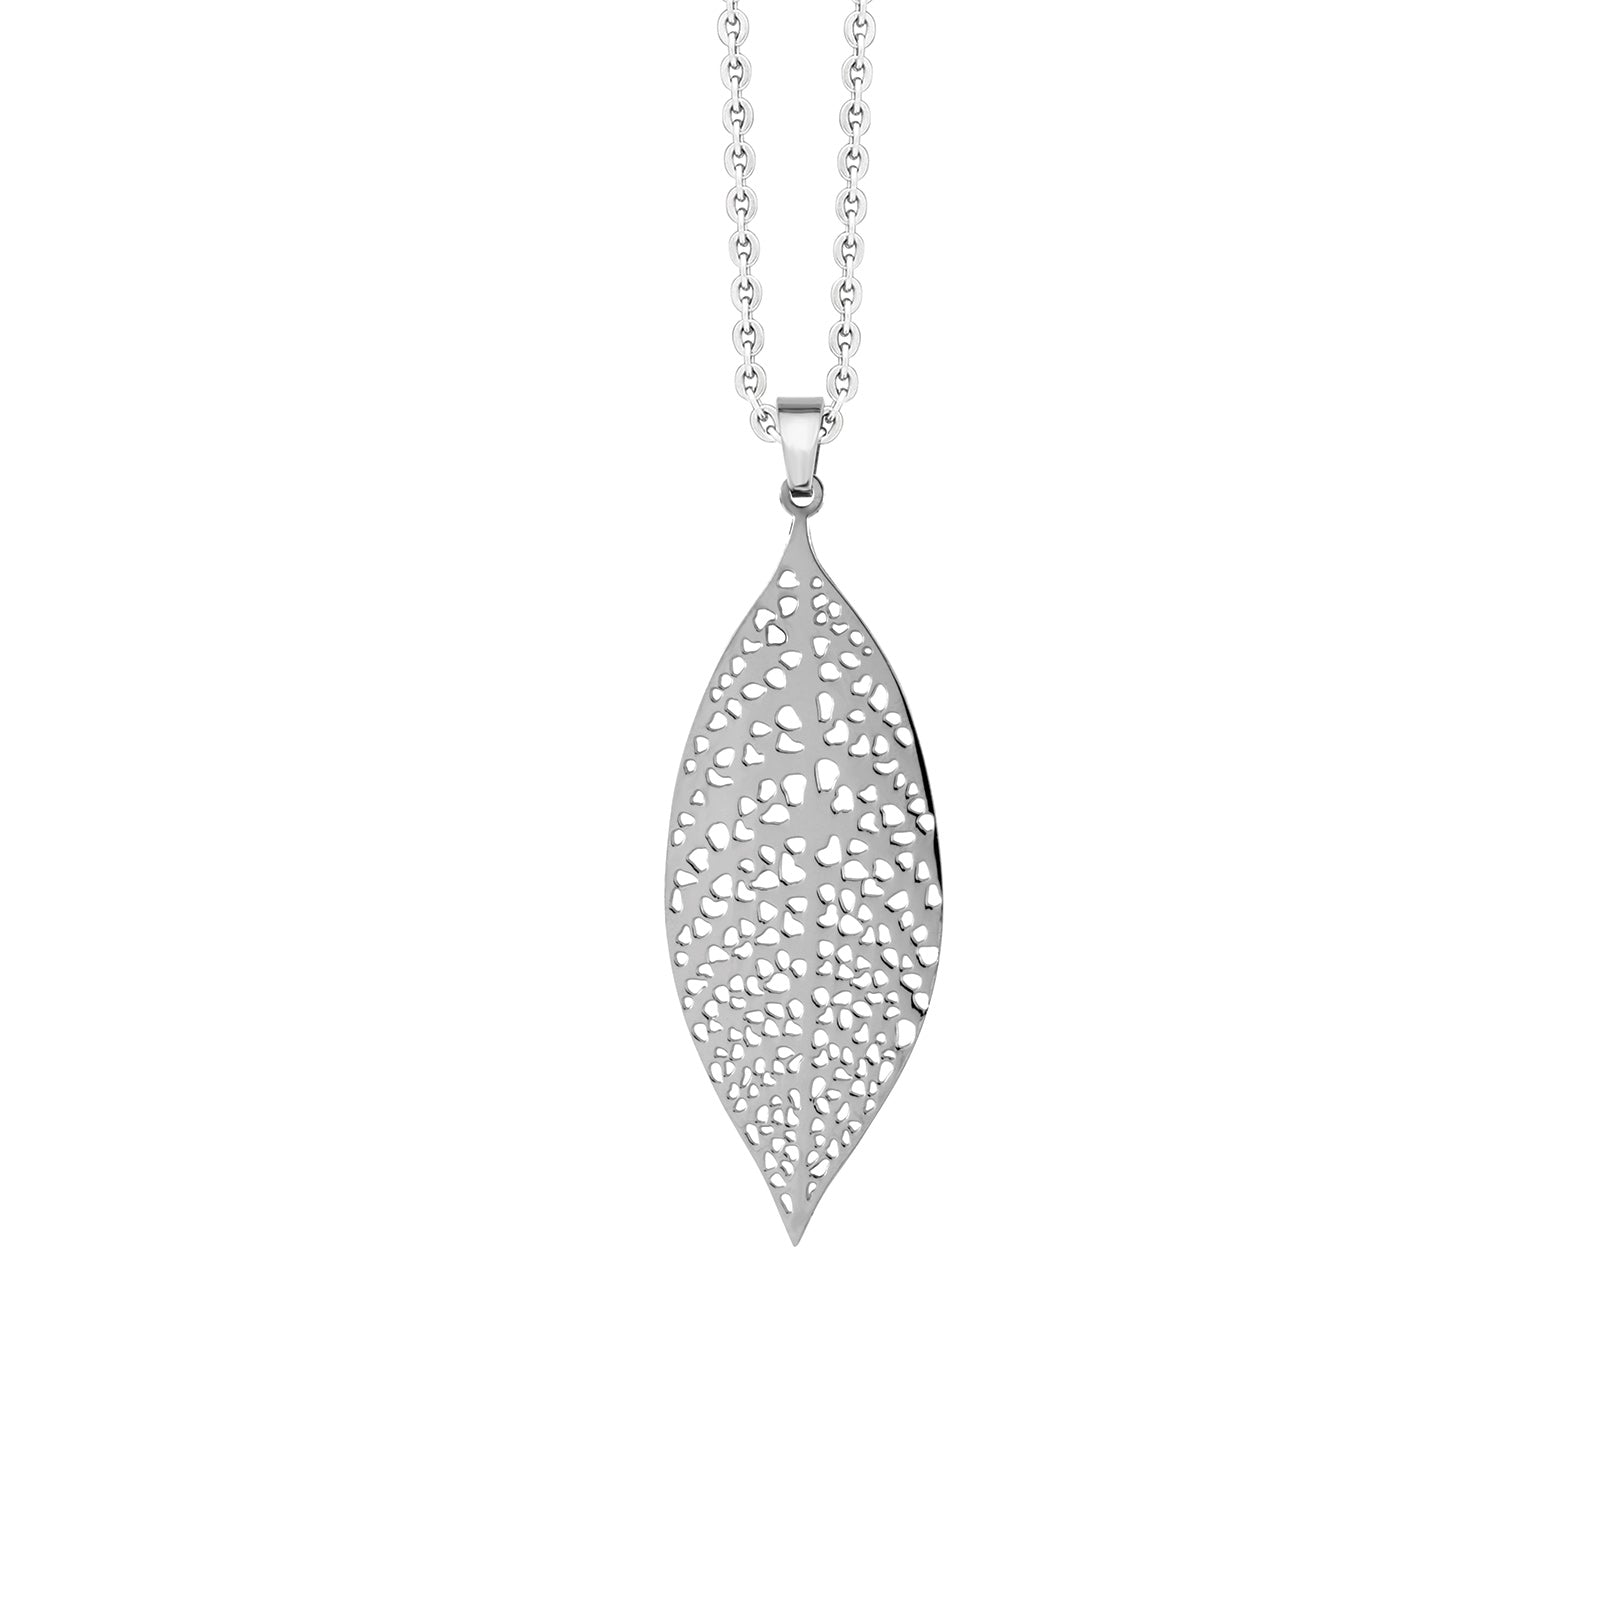 MNC-P110-A Stainless Steel Pendant Necklace